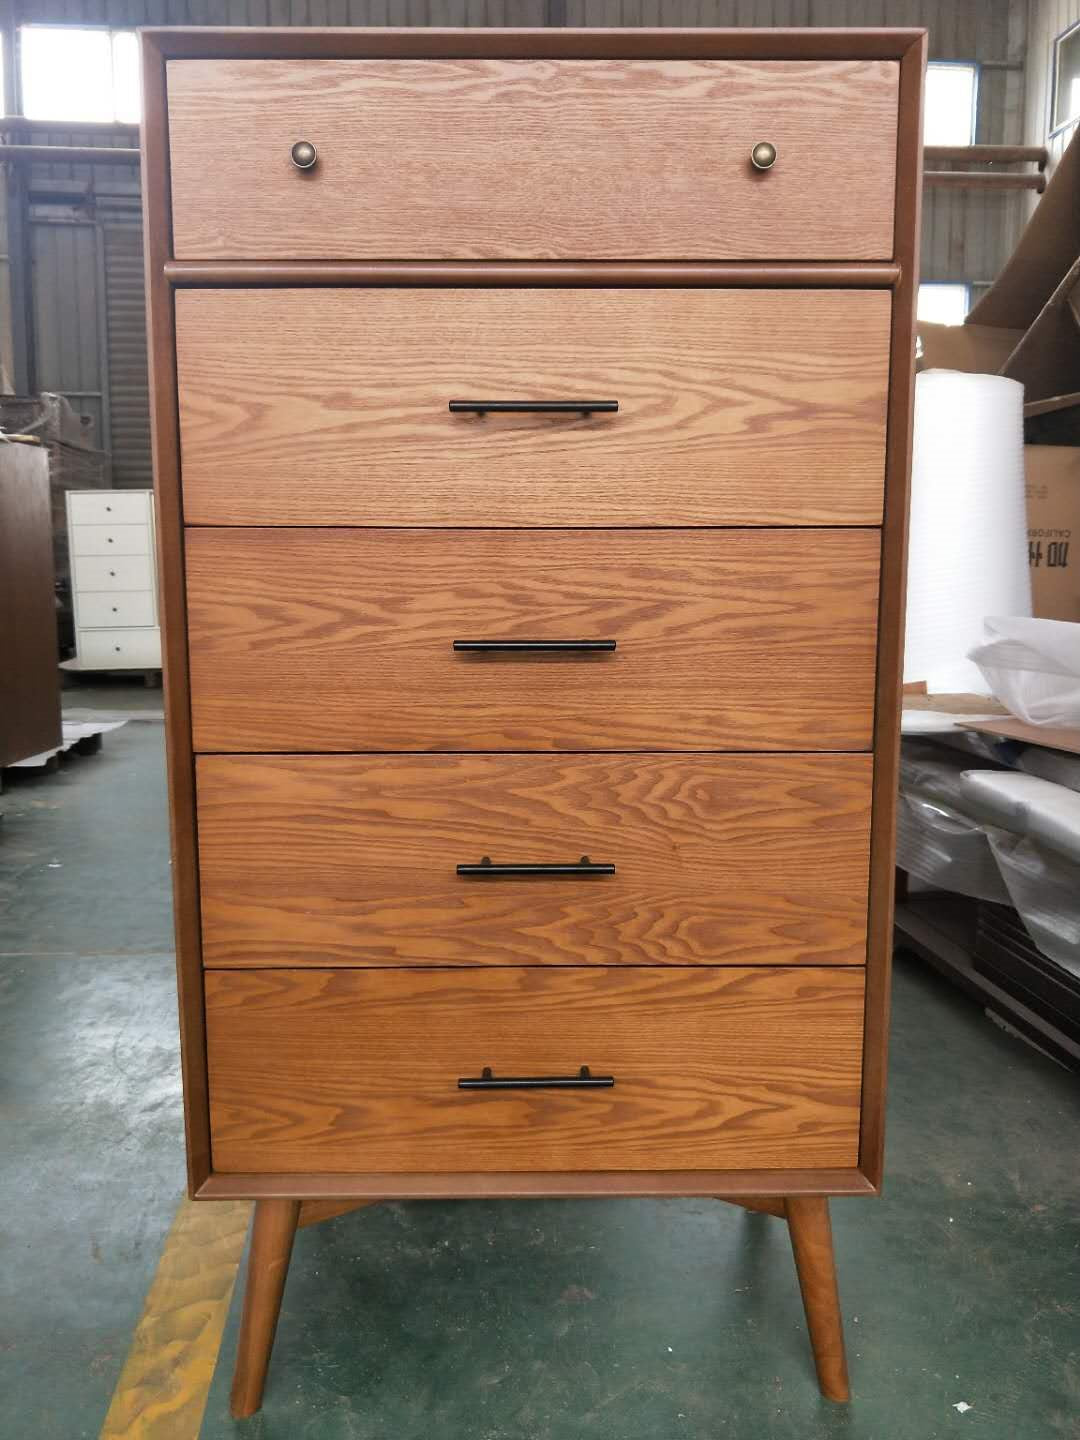 *MG*Mida Ash veneer 5 drawer Tall boy, white color in stock